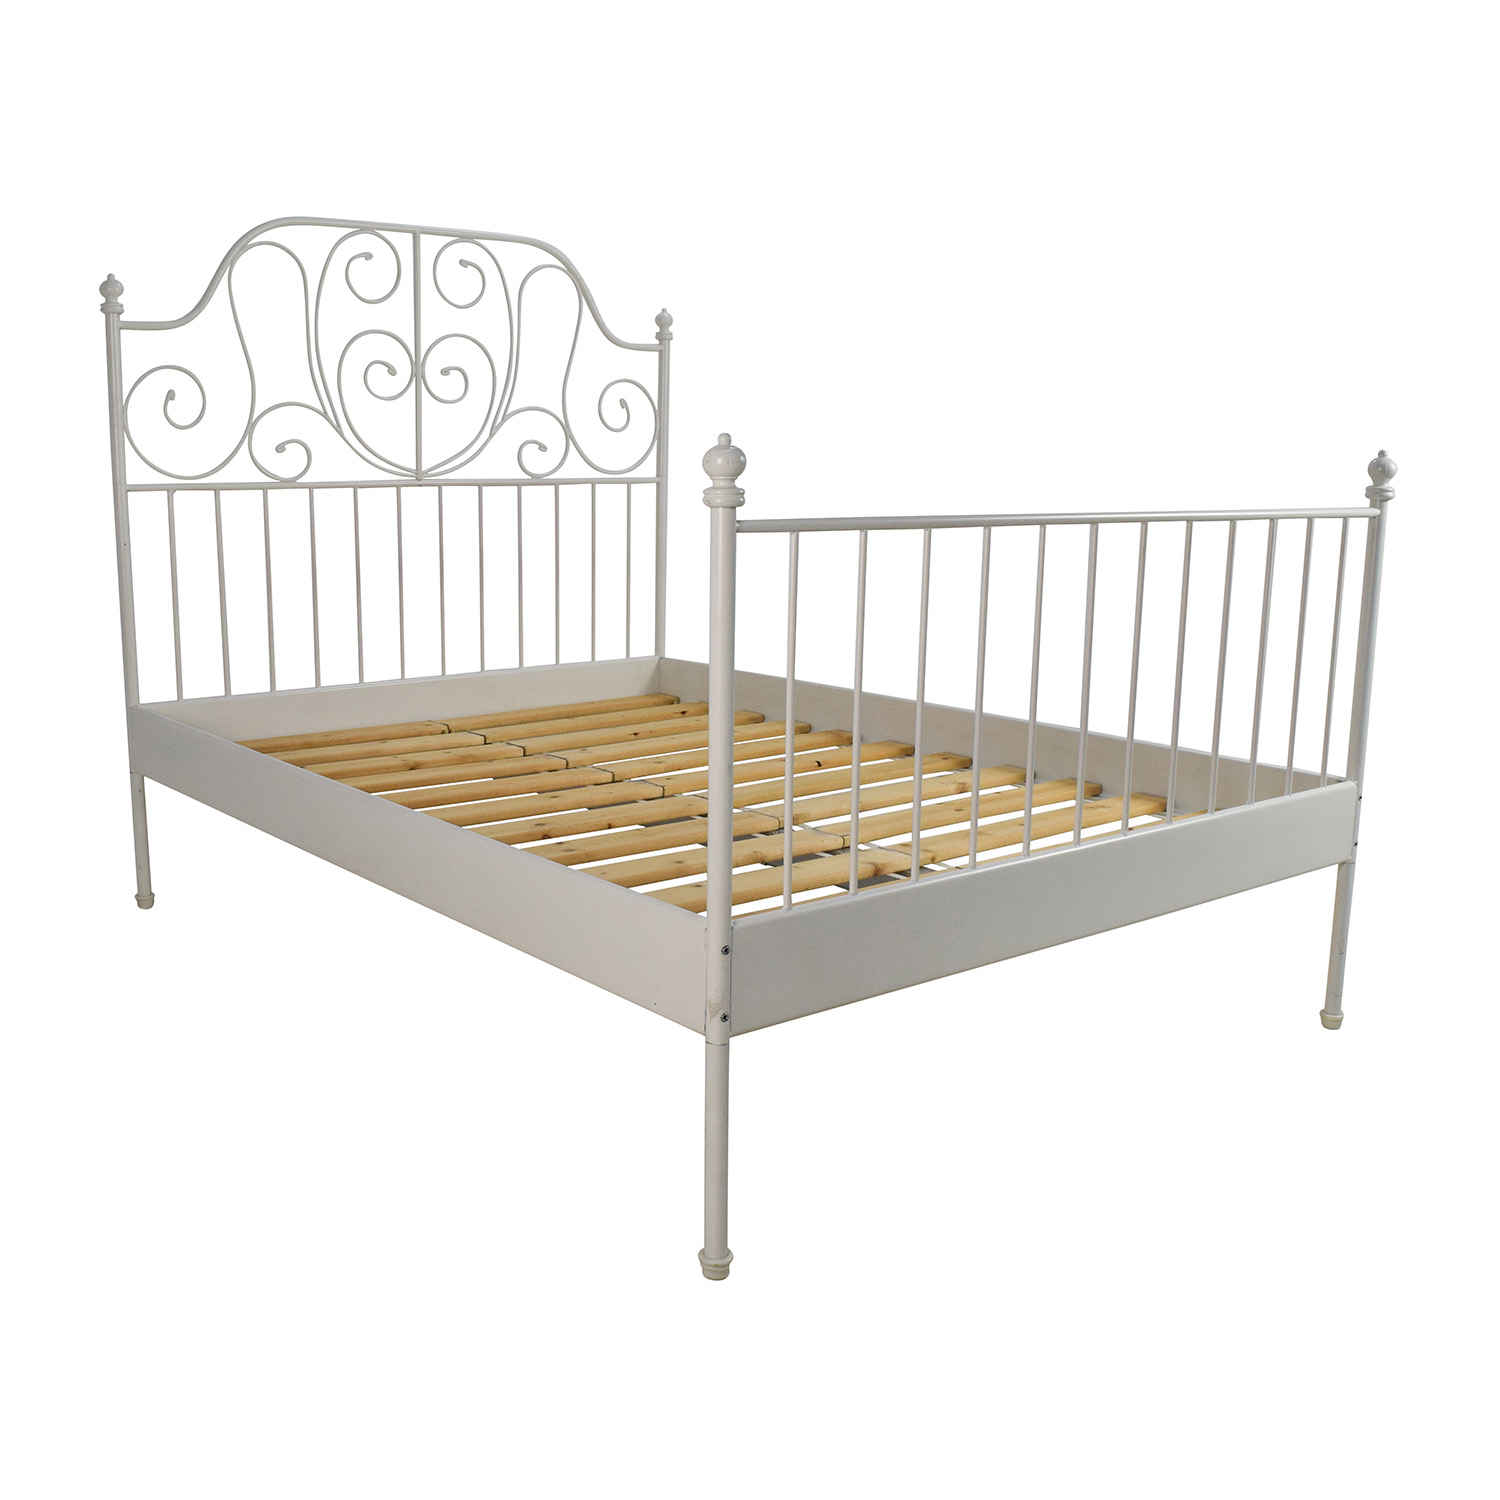 Bed Frame Ikea Leirvik Bed Frame Review Ikea Bedroom Product Reviews